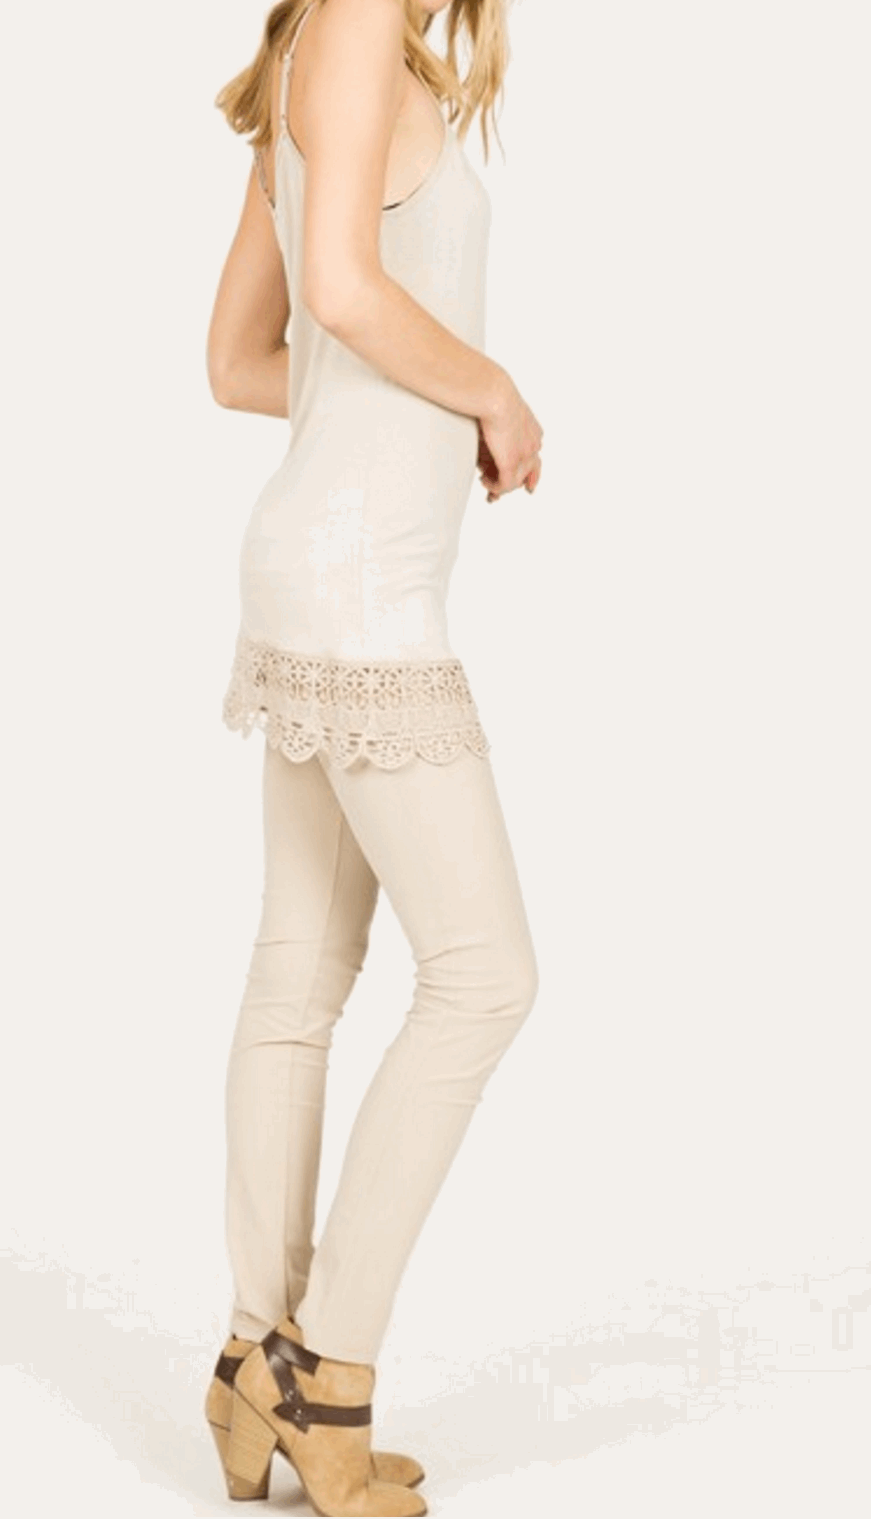 Camisole with Crochet Hemline in Cream from Monoreno | Beauty Cafe - 6